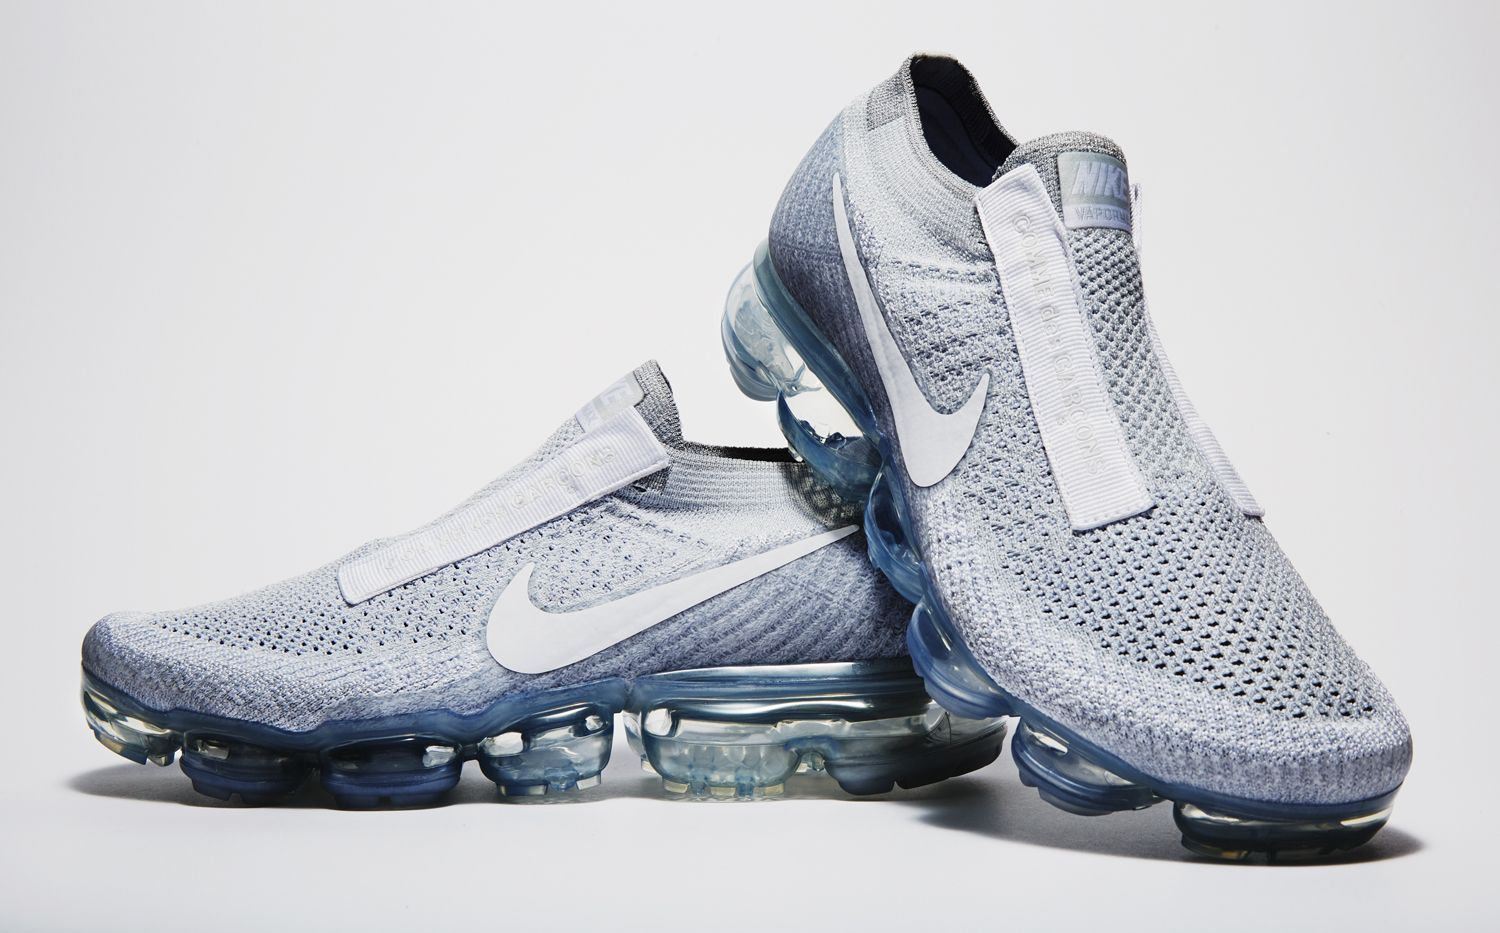 Nike Announces Comme des Garçons x Nike Air VaporMax for Early 2017